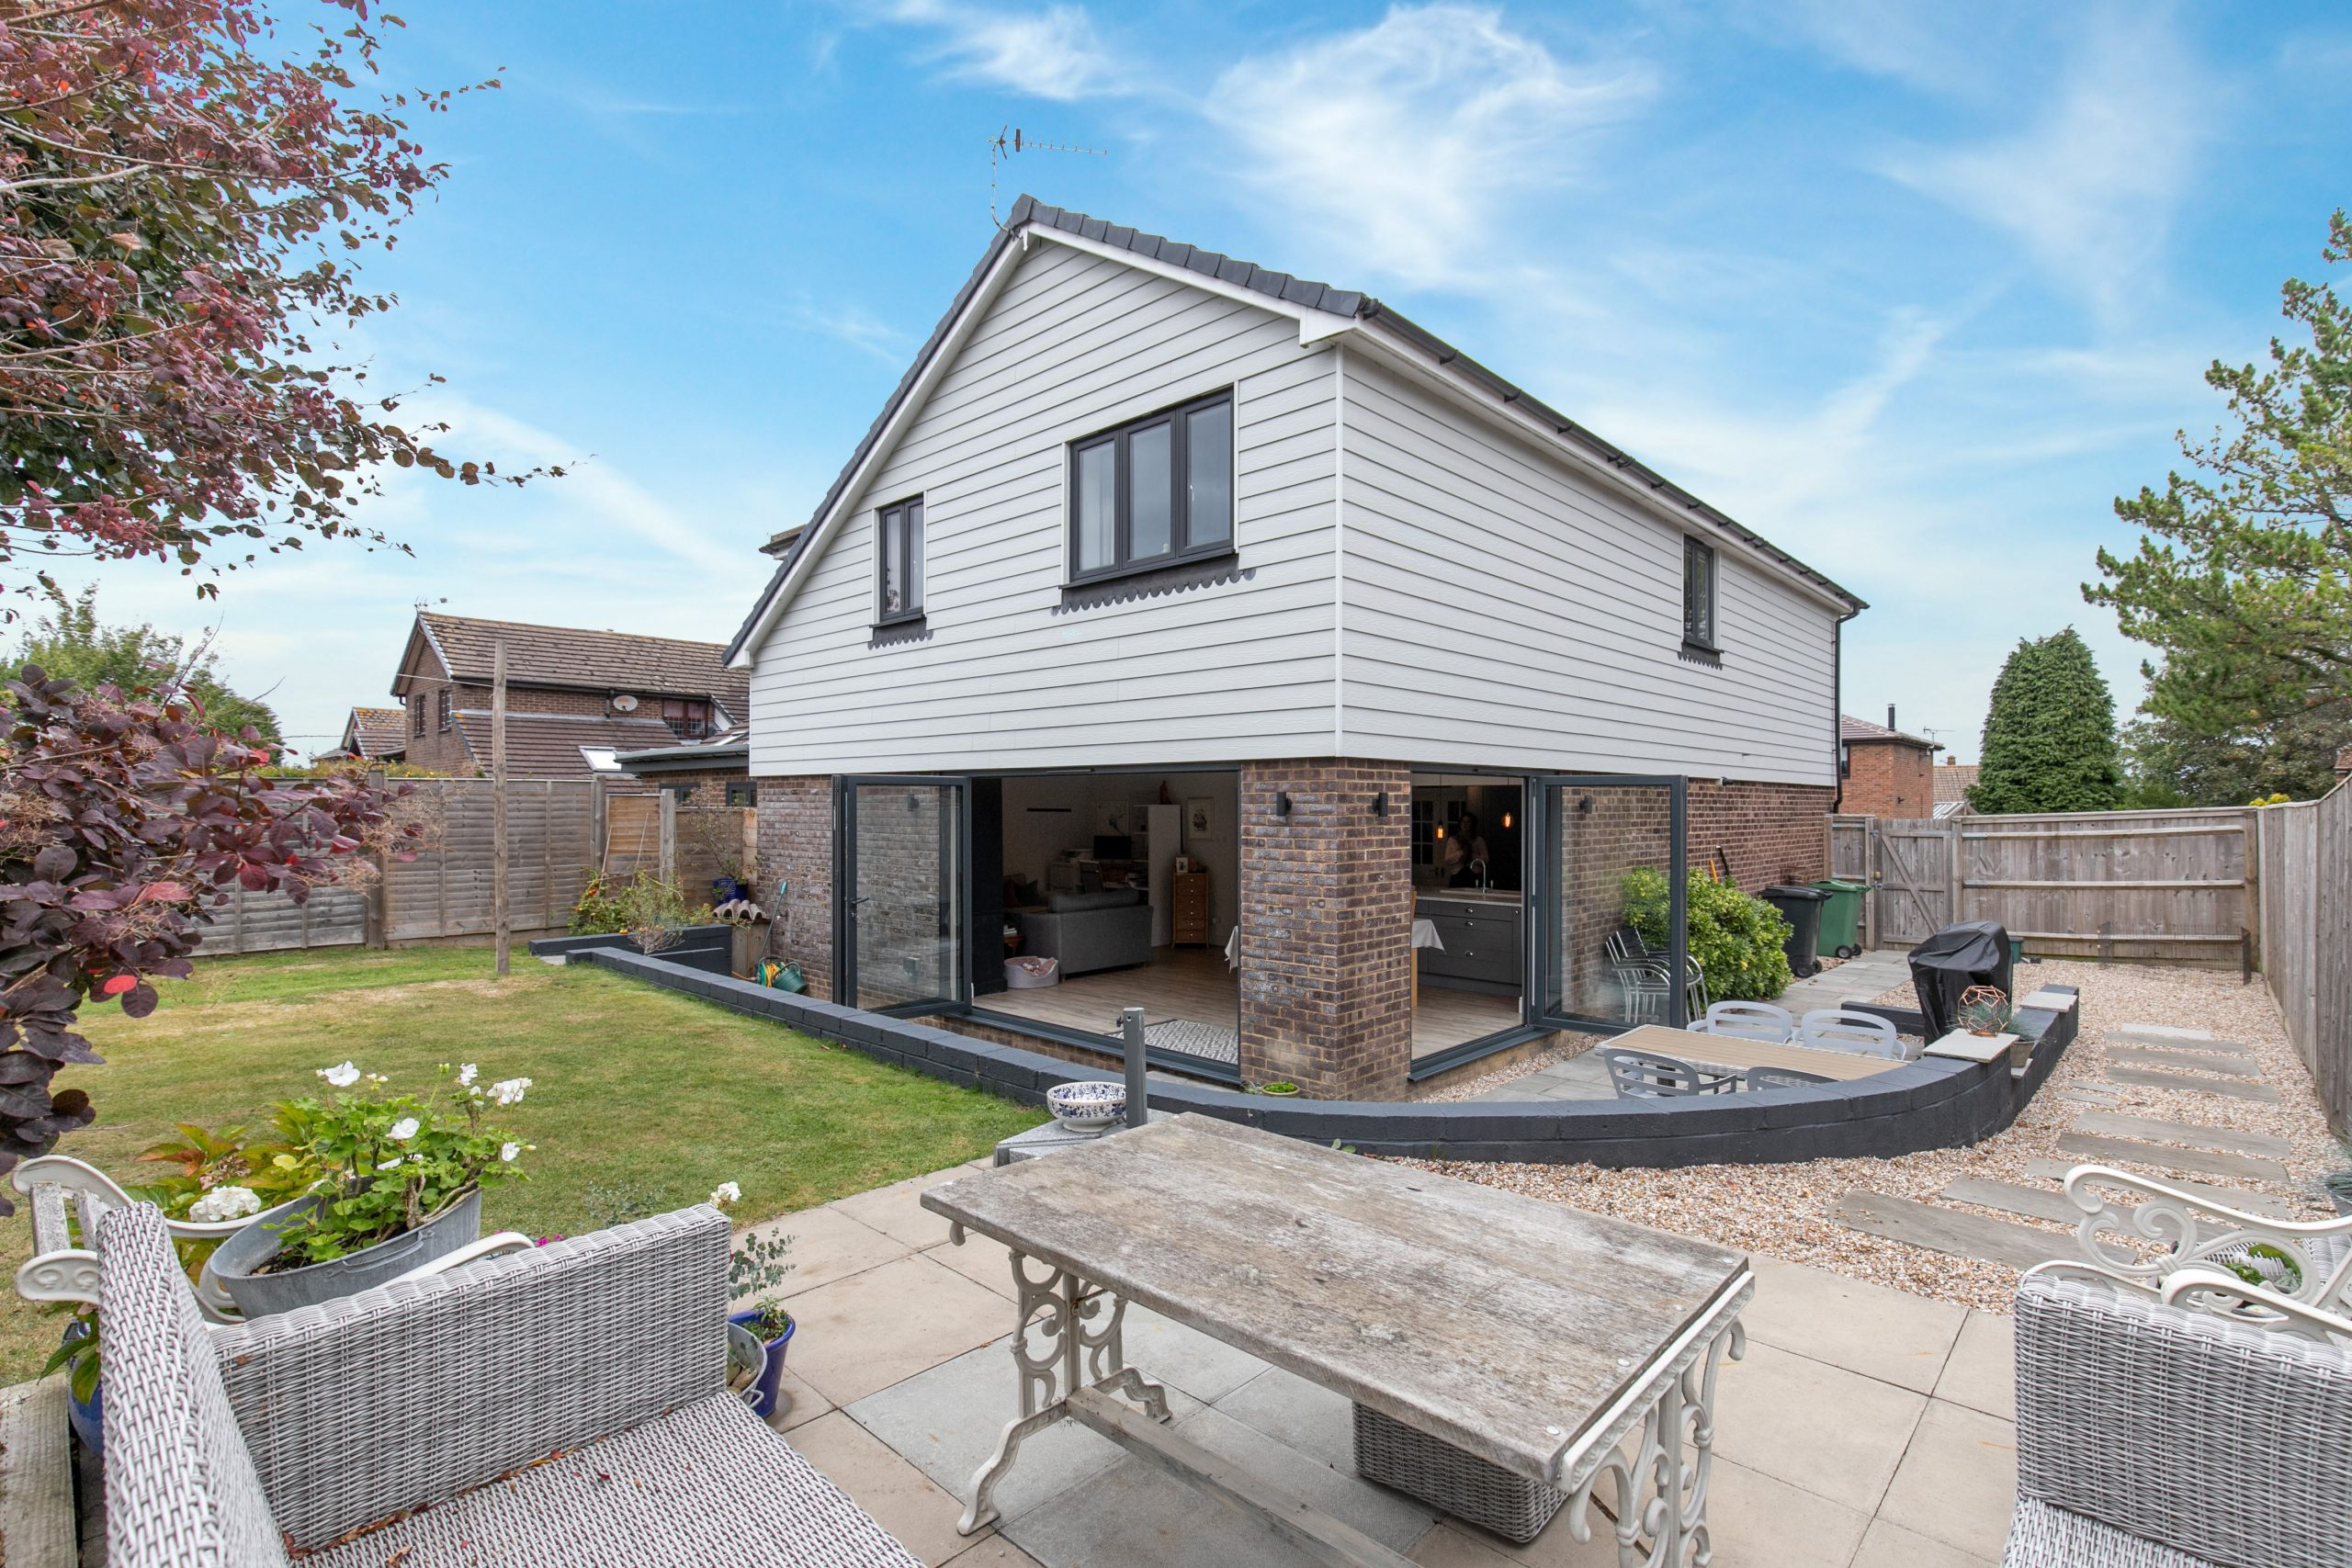 Broad Oak – 5 Bedroom Detached House